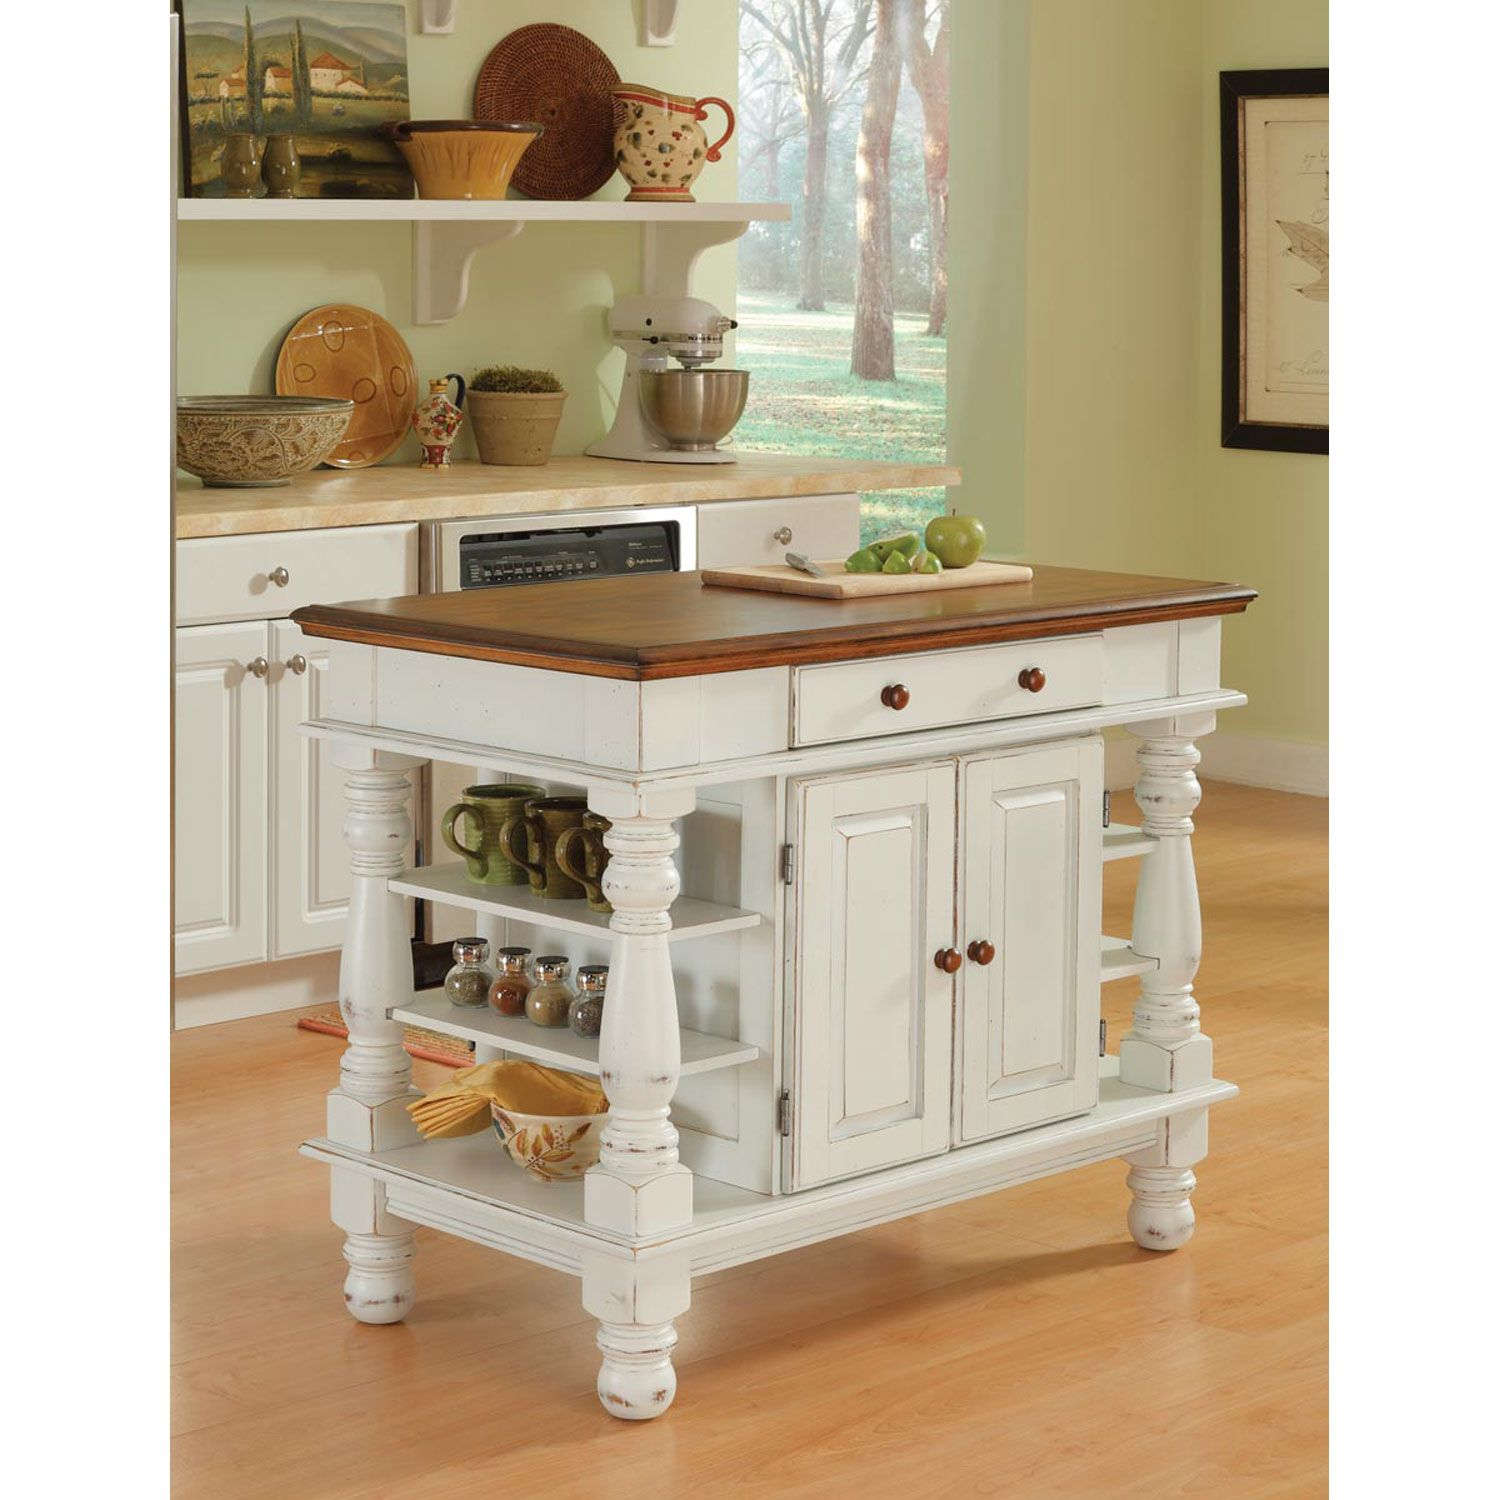 Stand Alone Bar Google Search Game Room Furniture Small Bar